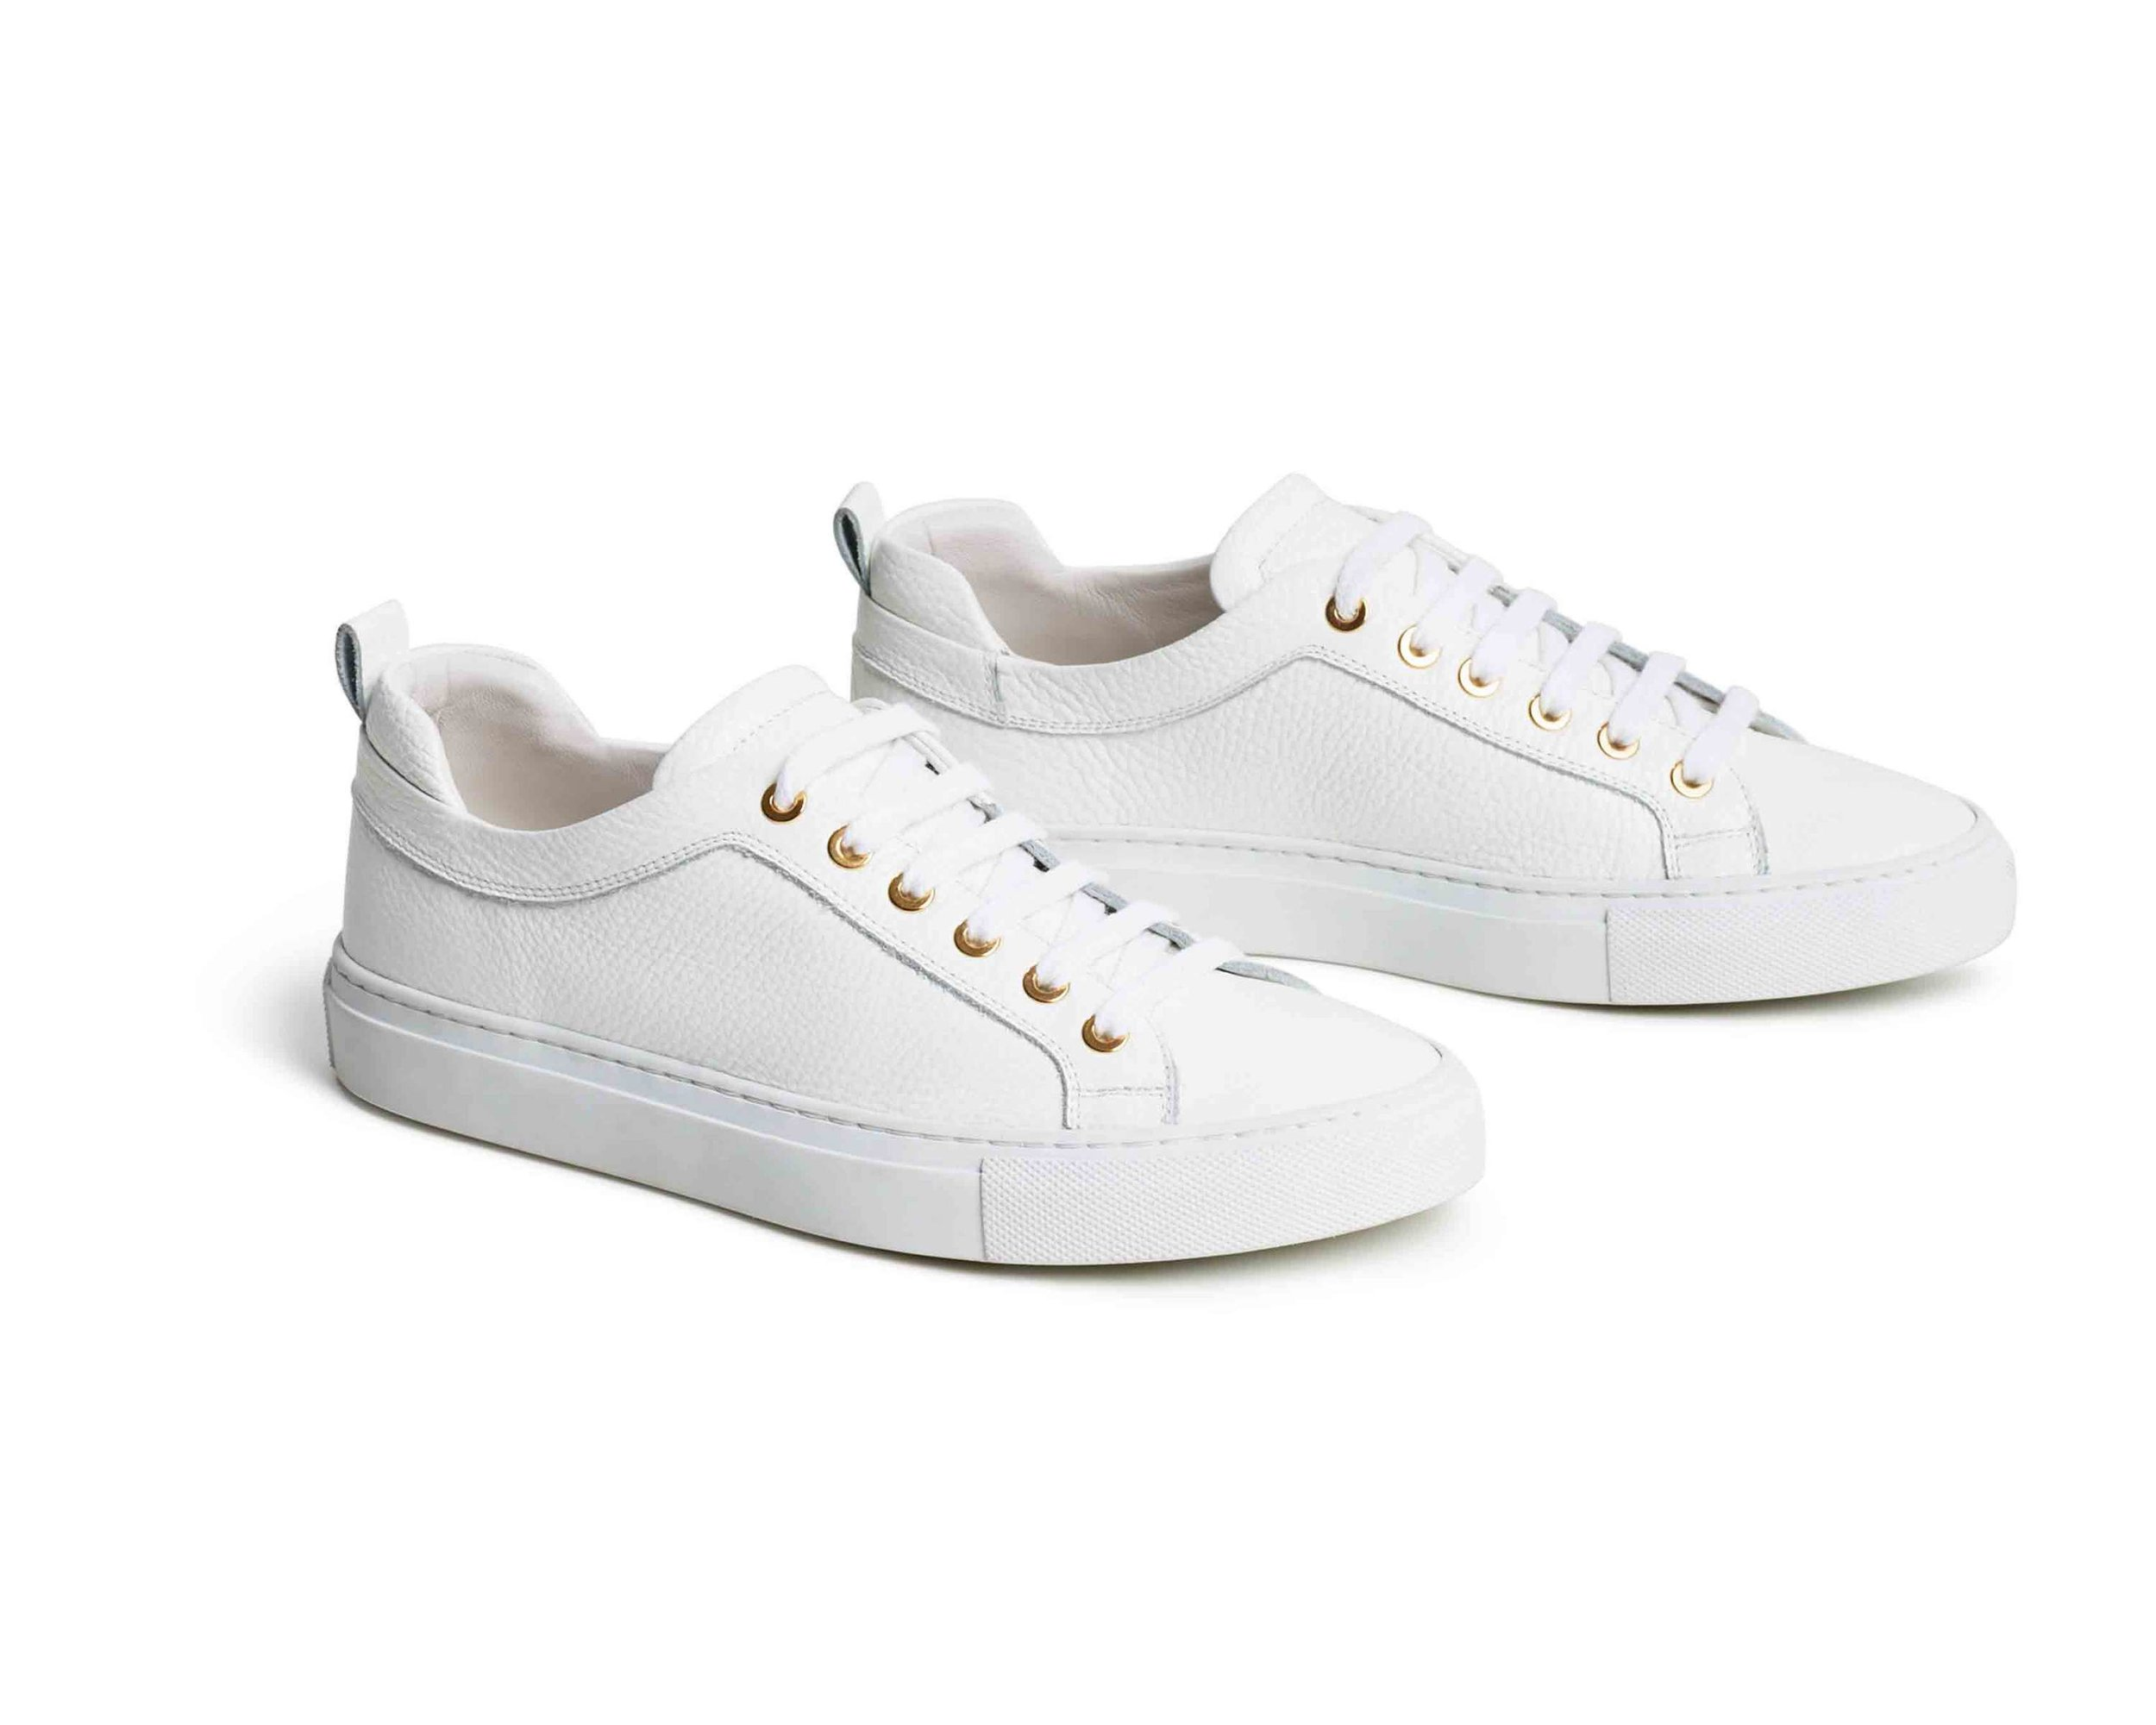 Italian Leather Sneakers - White leather sneakers from M. Gemi, handmade (yes, really) in Italy. Featuring soft gold eyelets and rich, artisan-treated leather, they go with all outfits and can be worn all day everyday (seriously). The perfect sneaker for traveling!